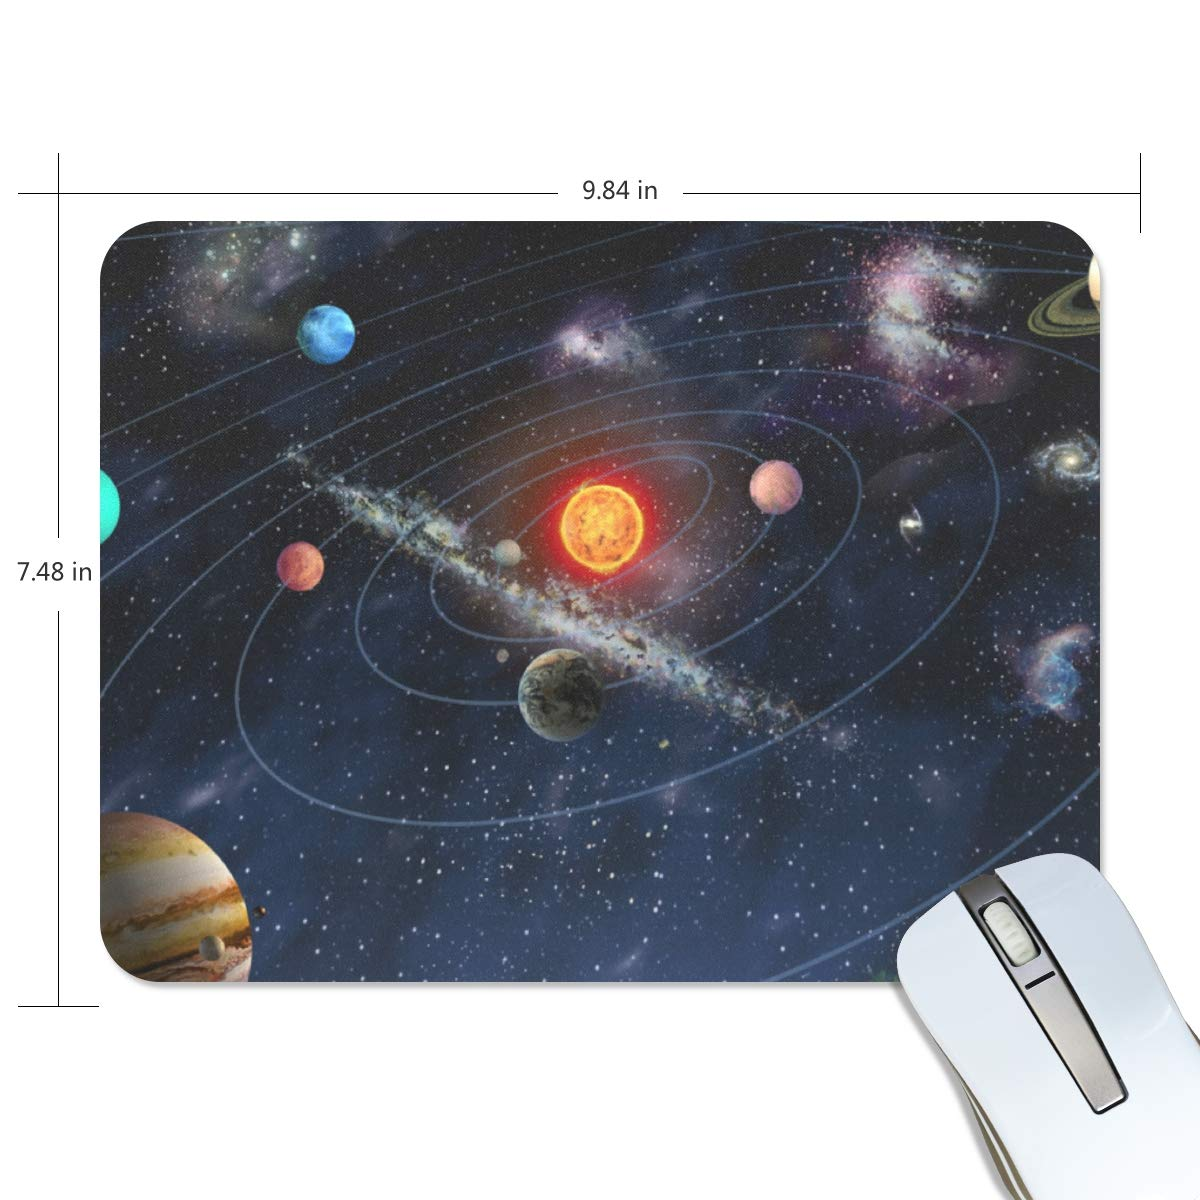 Our Solar System of Space Mouse pad Mouse pad Mouse pad mice pad Mouse pad The Office mat Mouse pad Mousepad Nonslip Rubber Backing